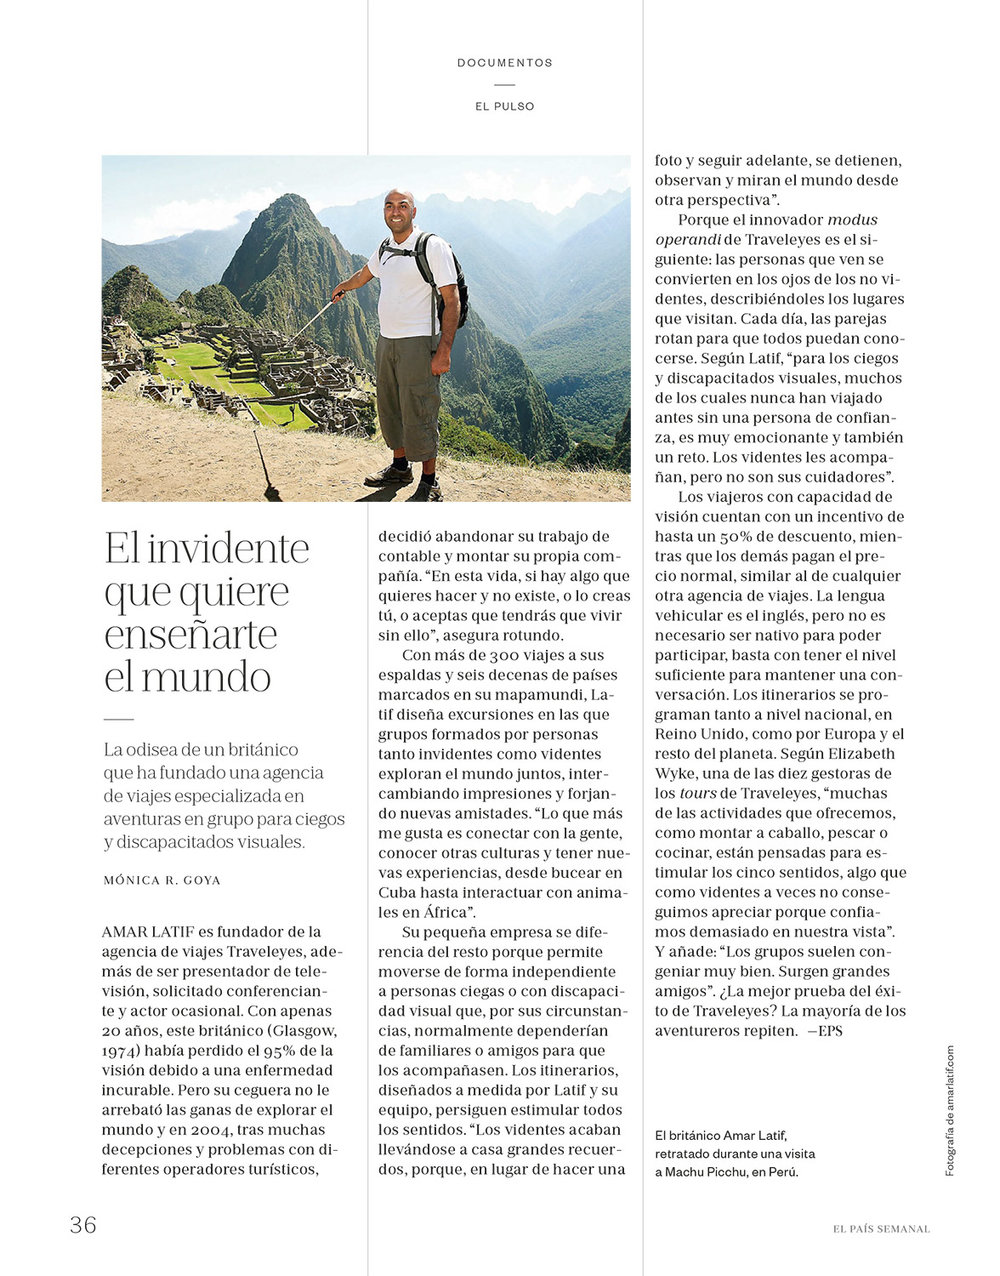 Amar Latif of Traveleyes - El País Semanal 23/09/2017 - Words